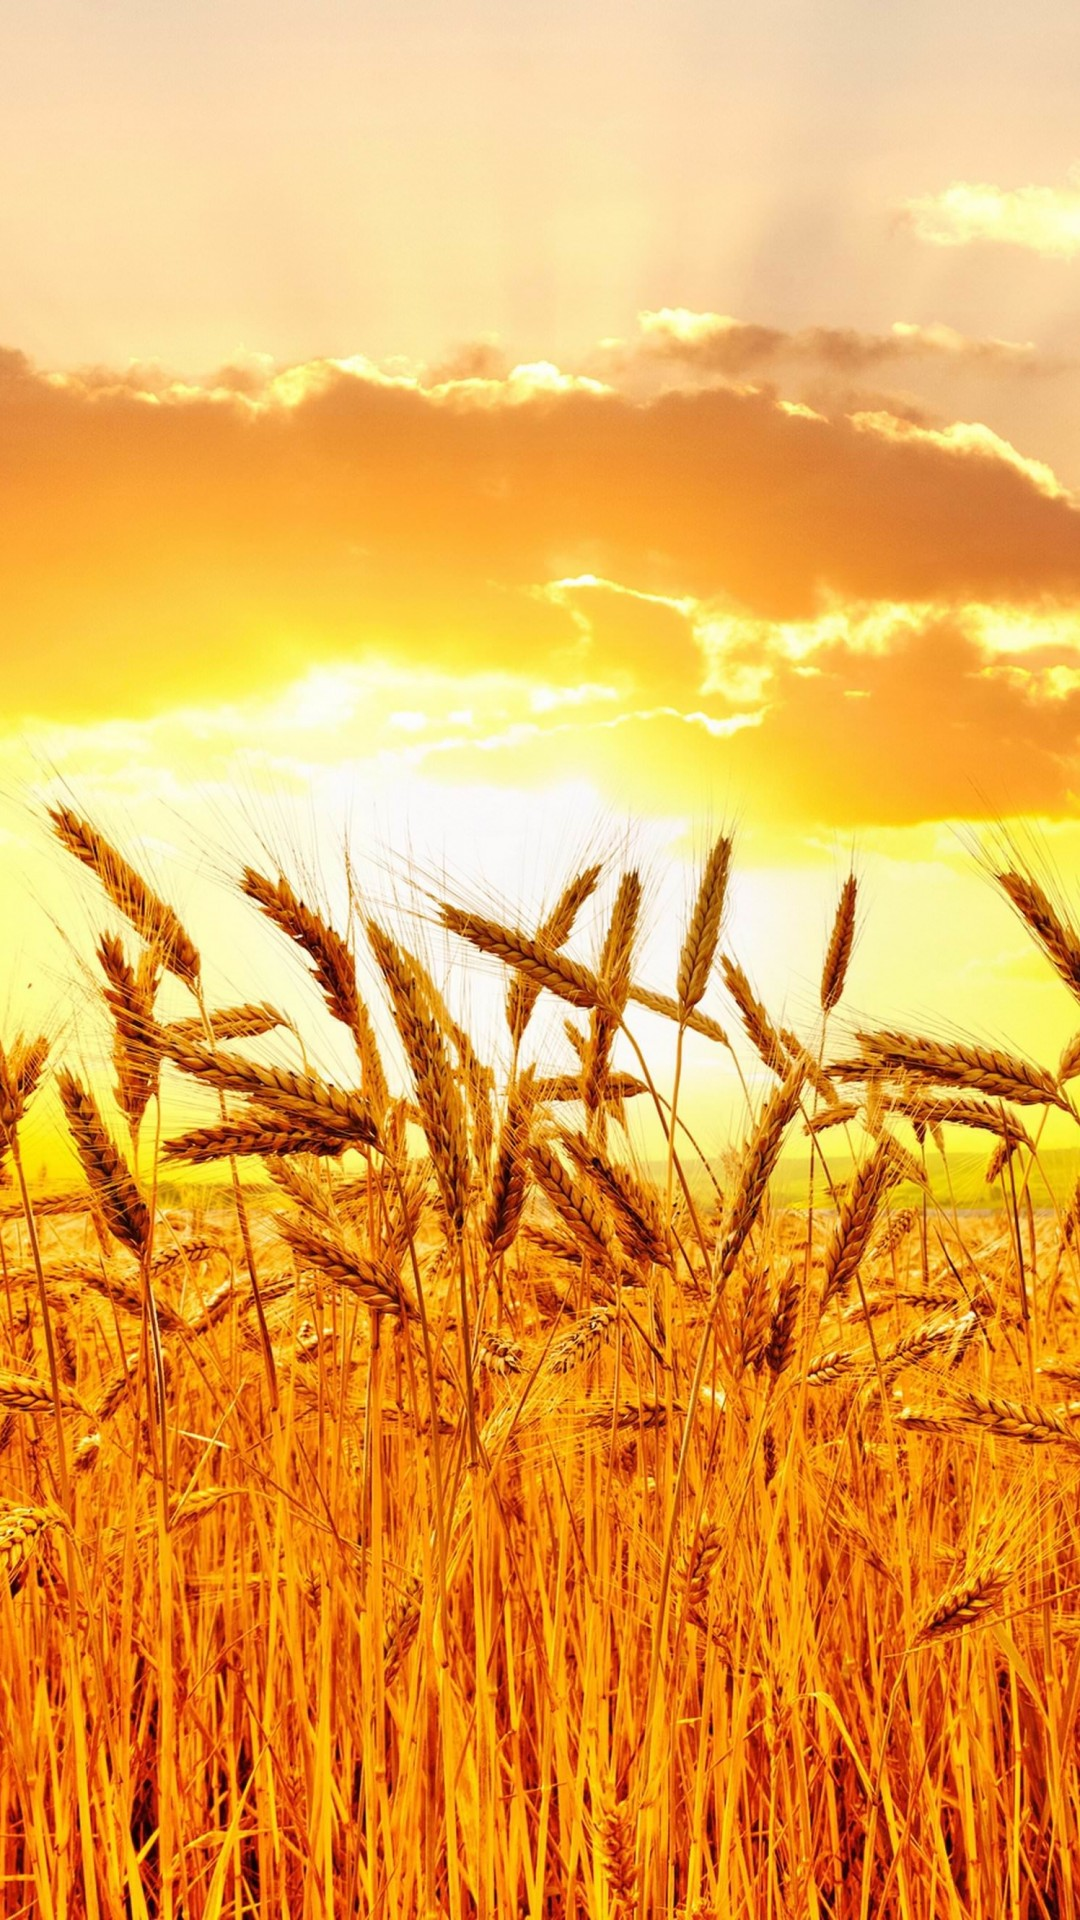 Golden Wheat Field At Sunset Wallpaper for HTC One